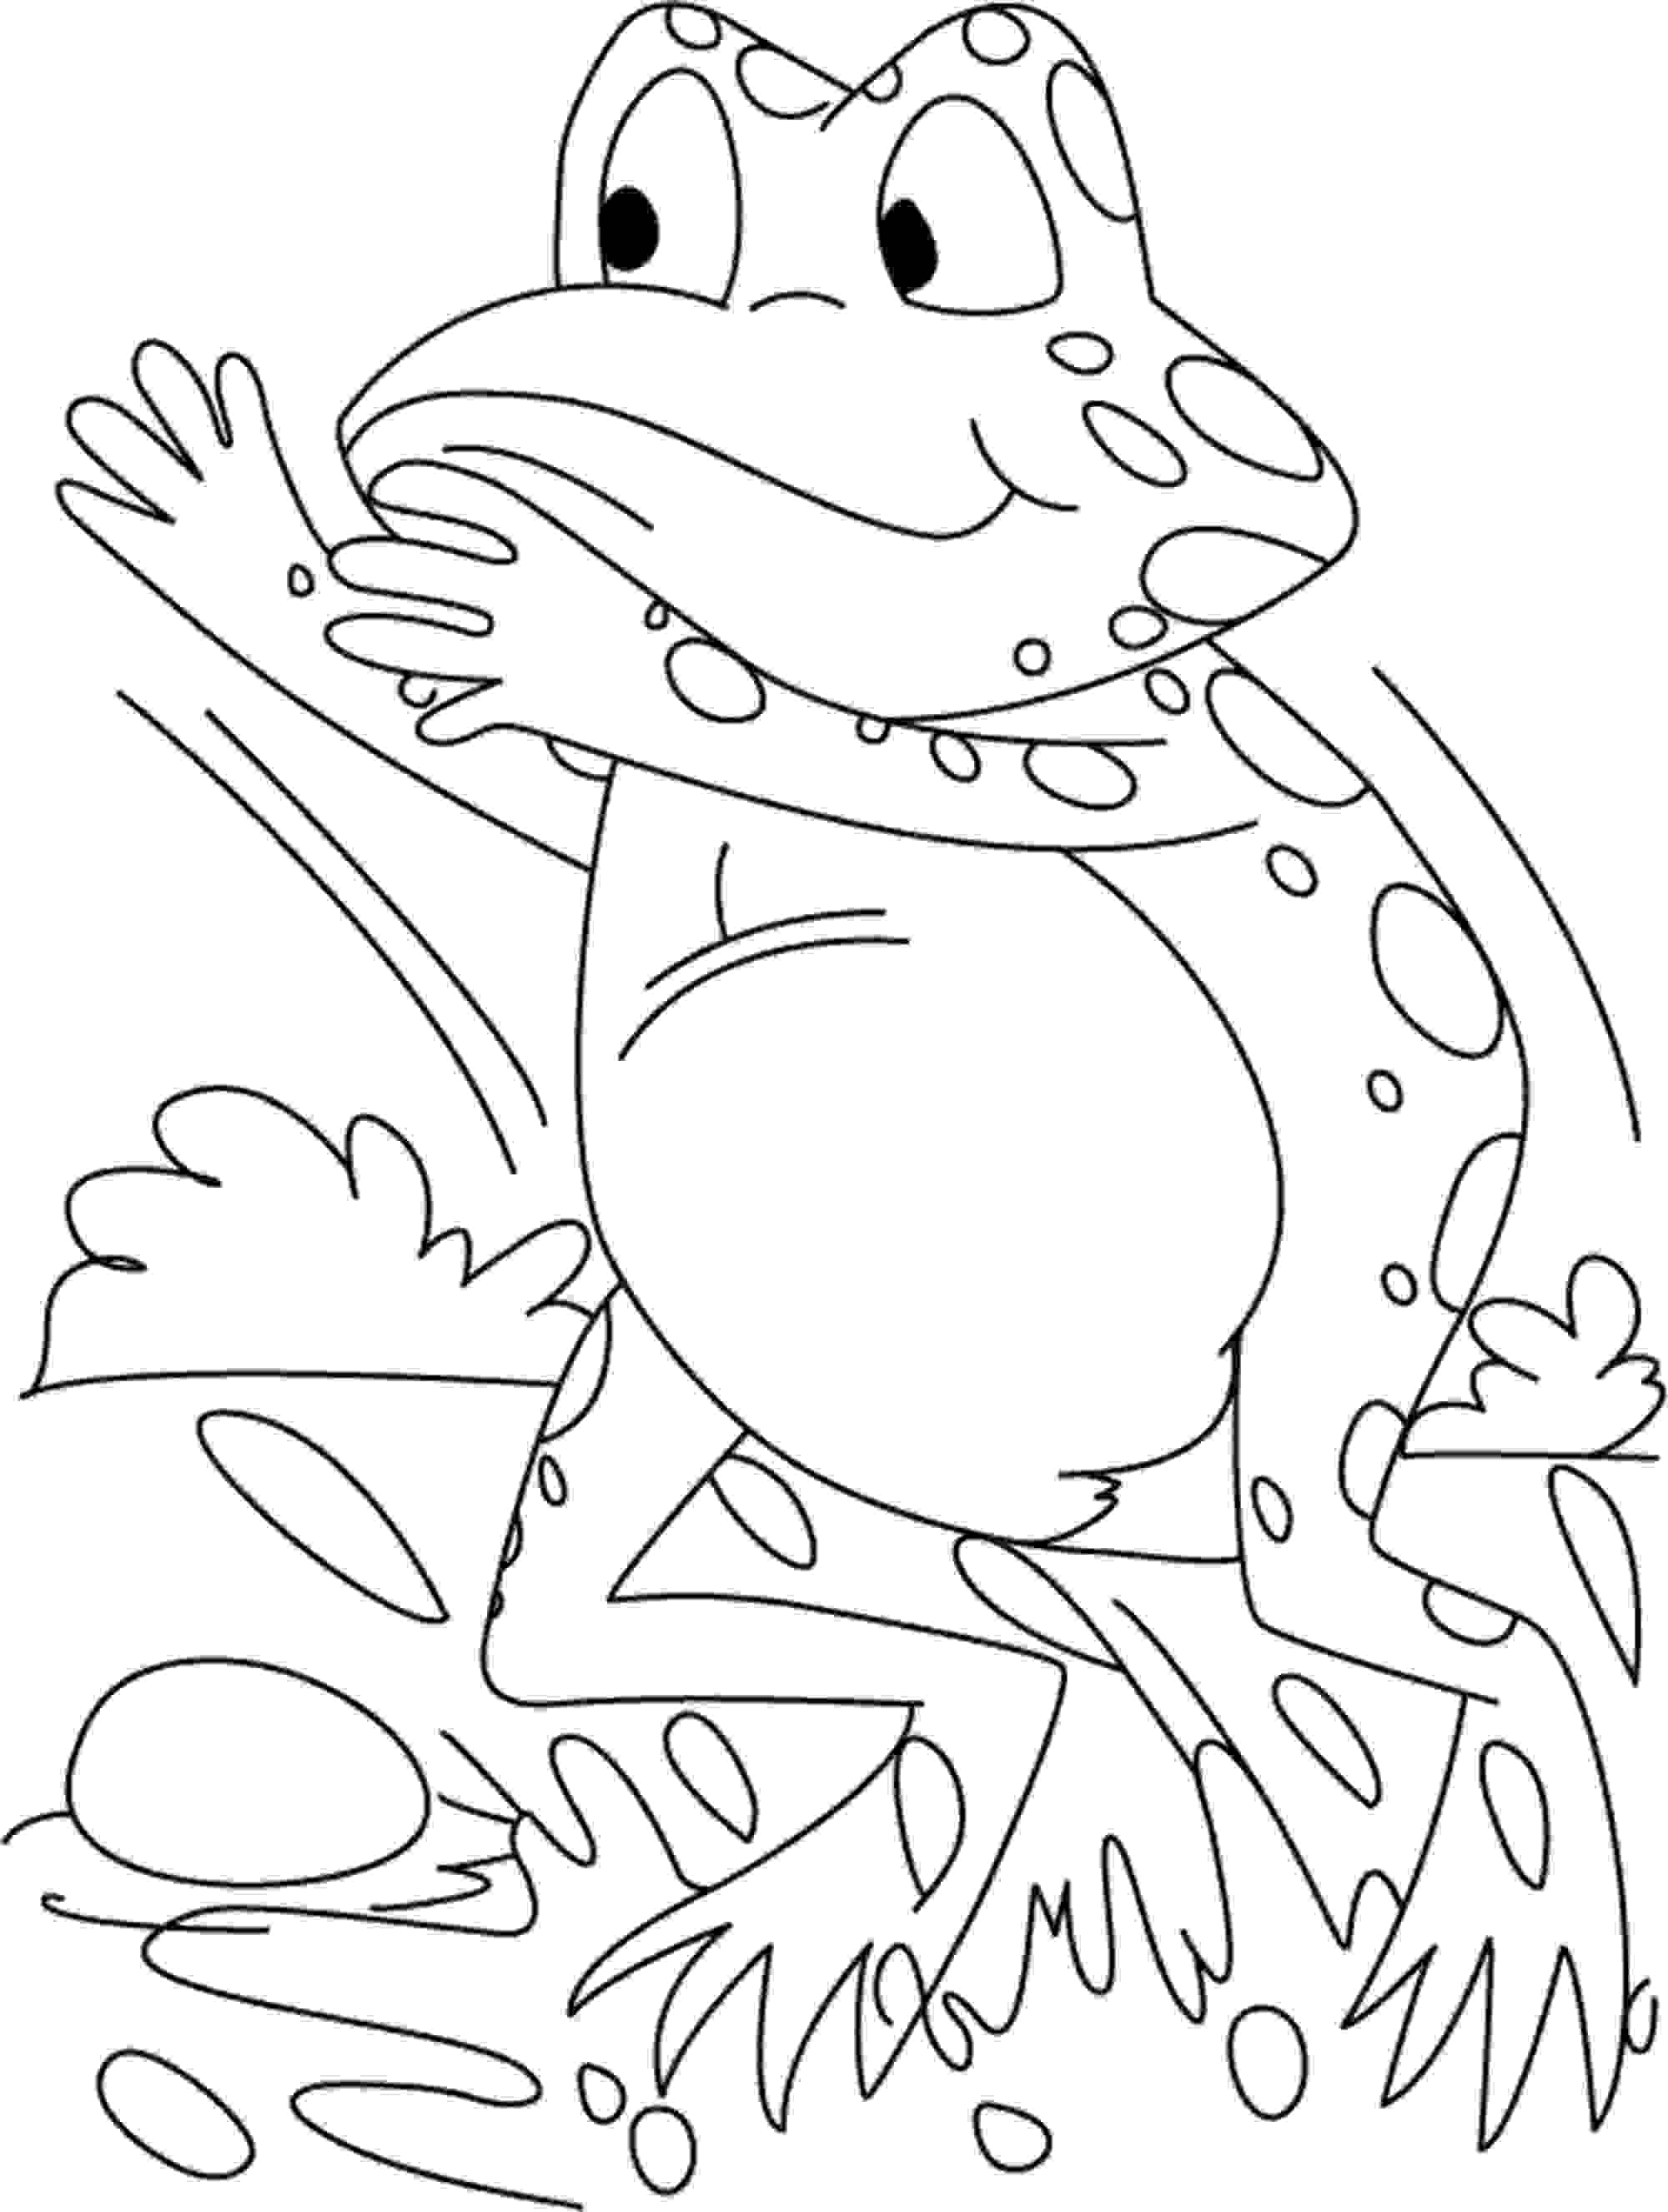 pictures of frogs to color print download frog coloring pages theme for kids of frogs pictures to color